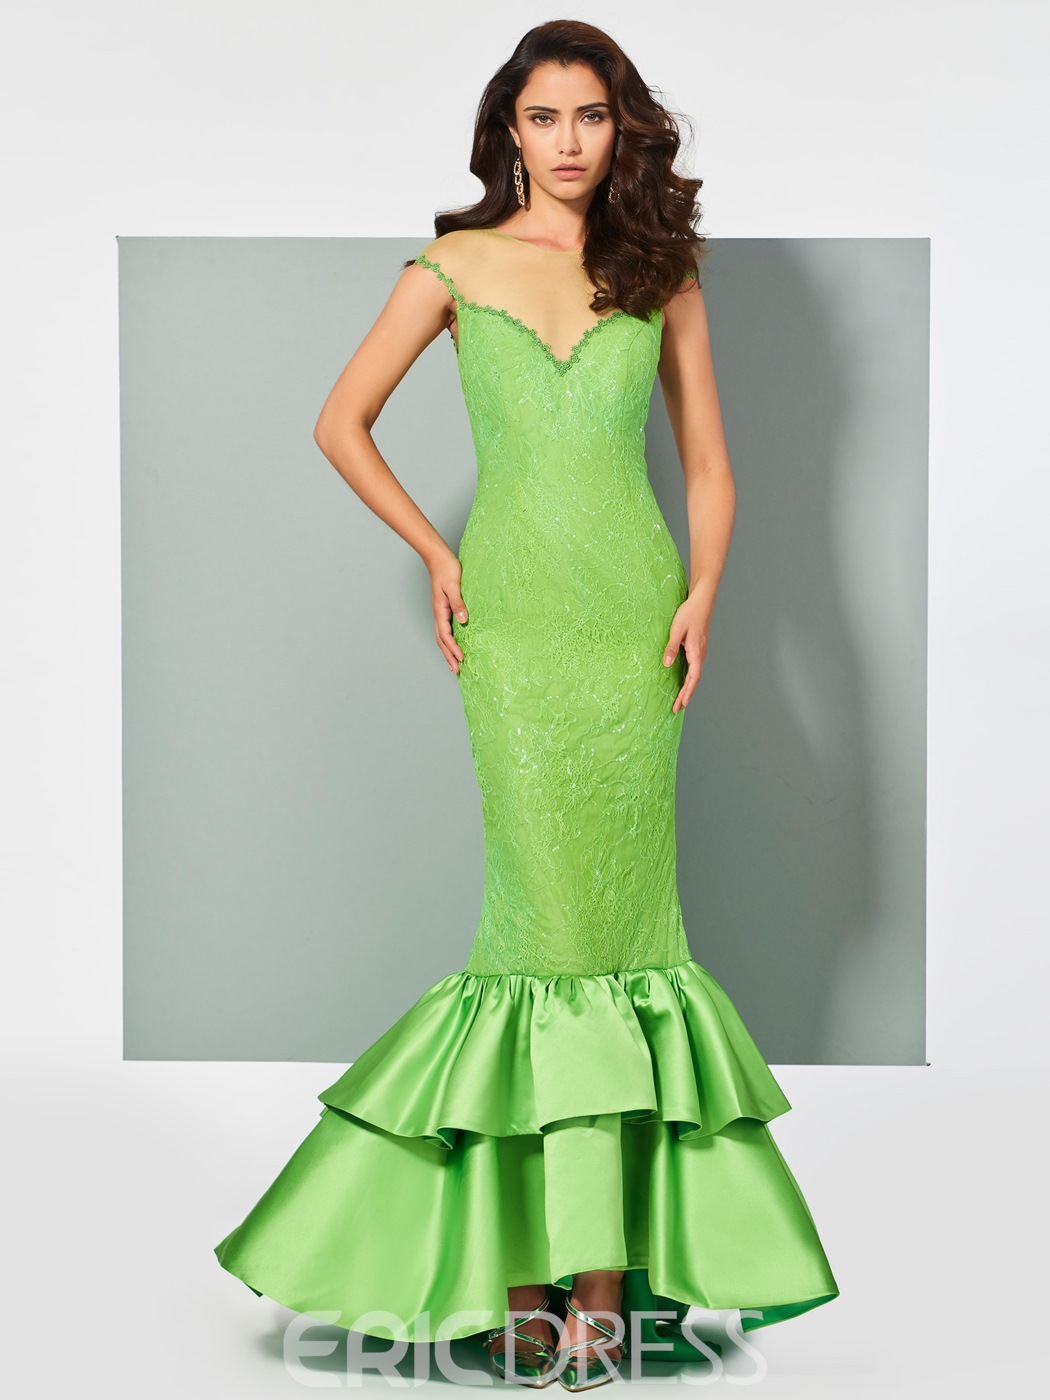 Ericdress Cap Sleeve Lace Mermaid Evening Dress With Sheer Back